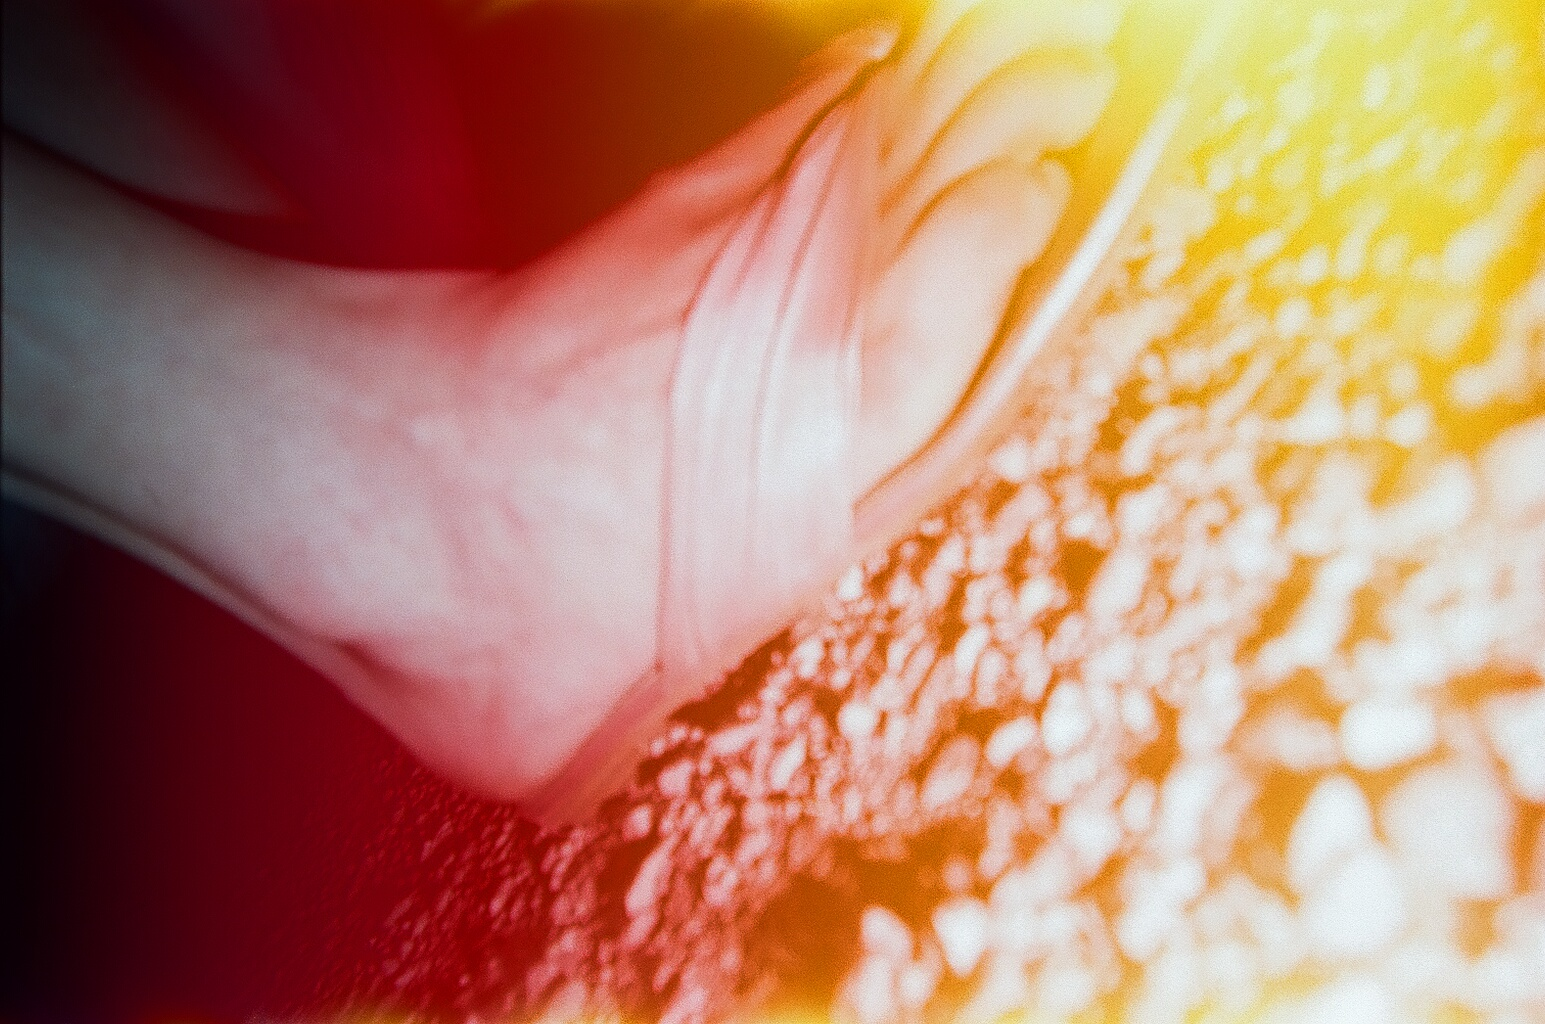 I dropped my camera on the cement, inadvertently taking a portrait of my lovely foot while also causing light leaks.